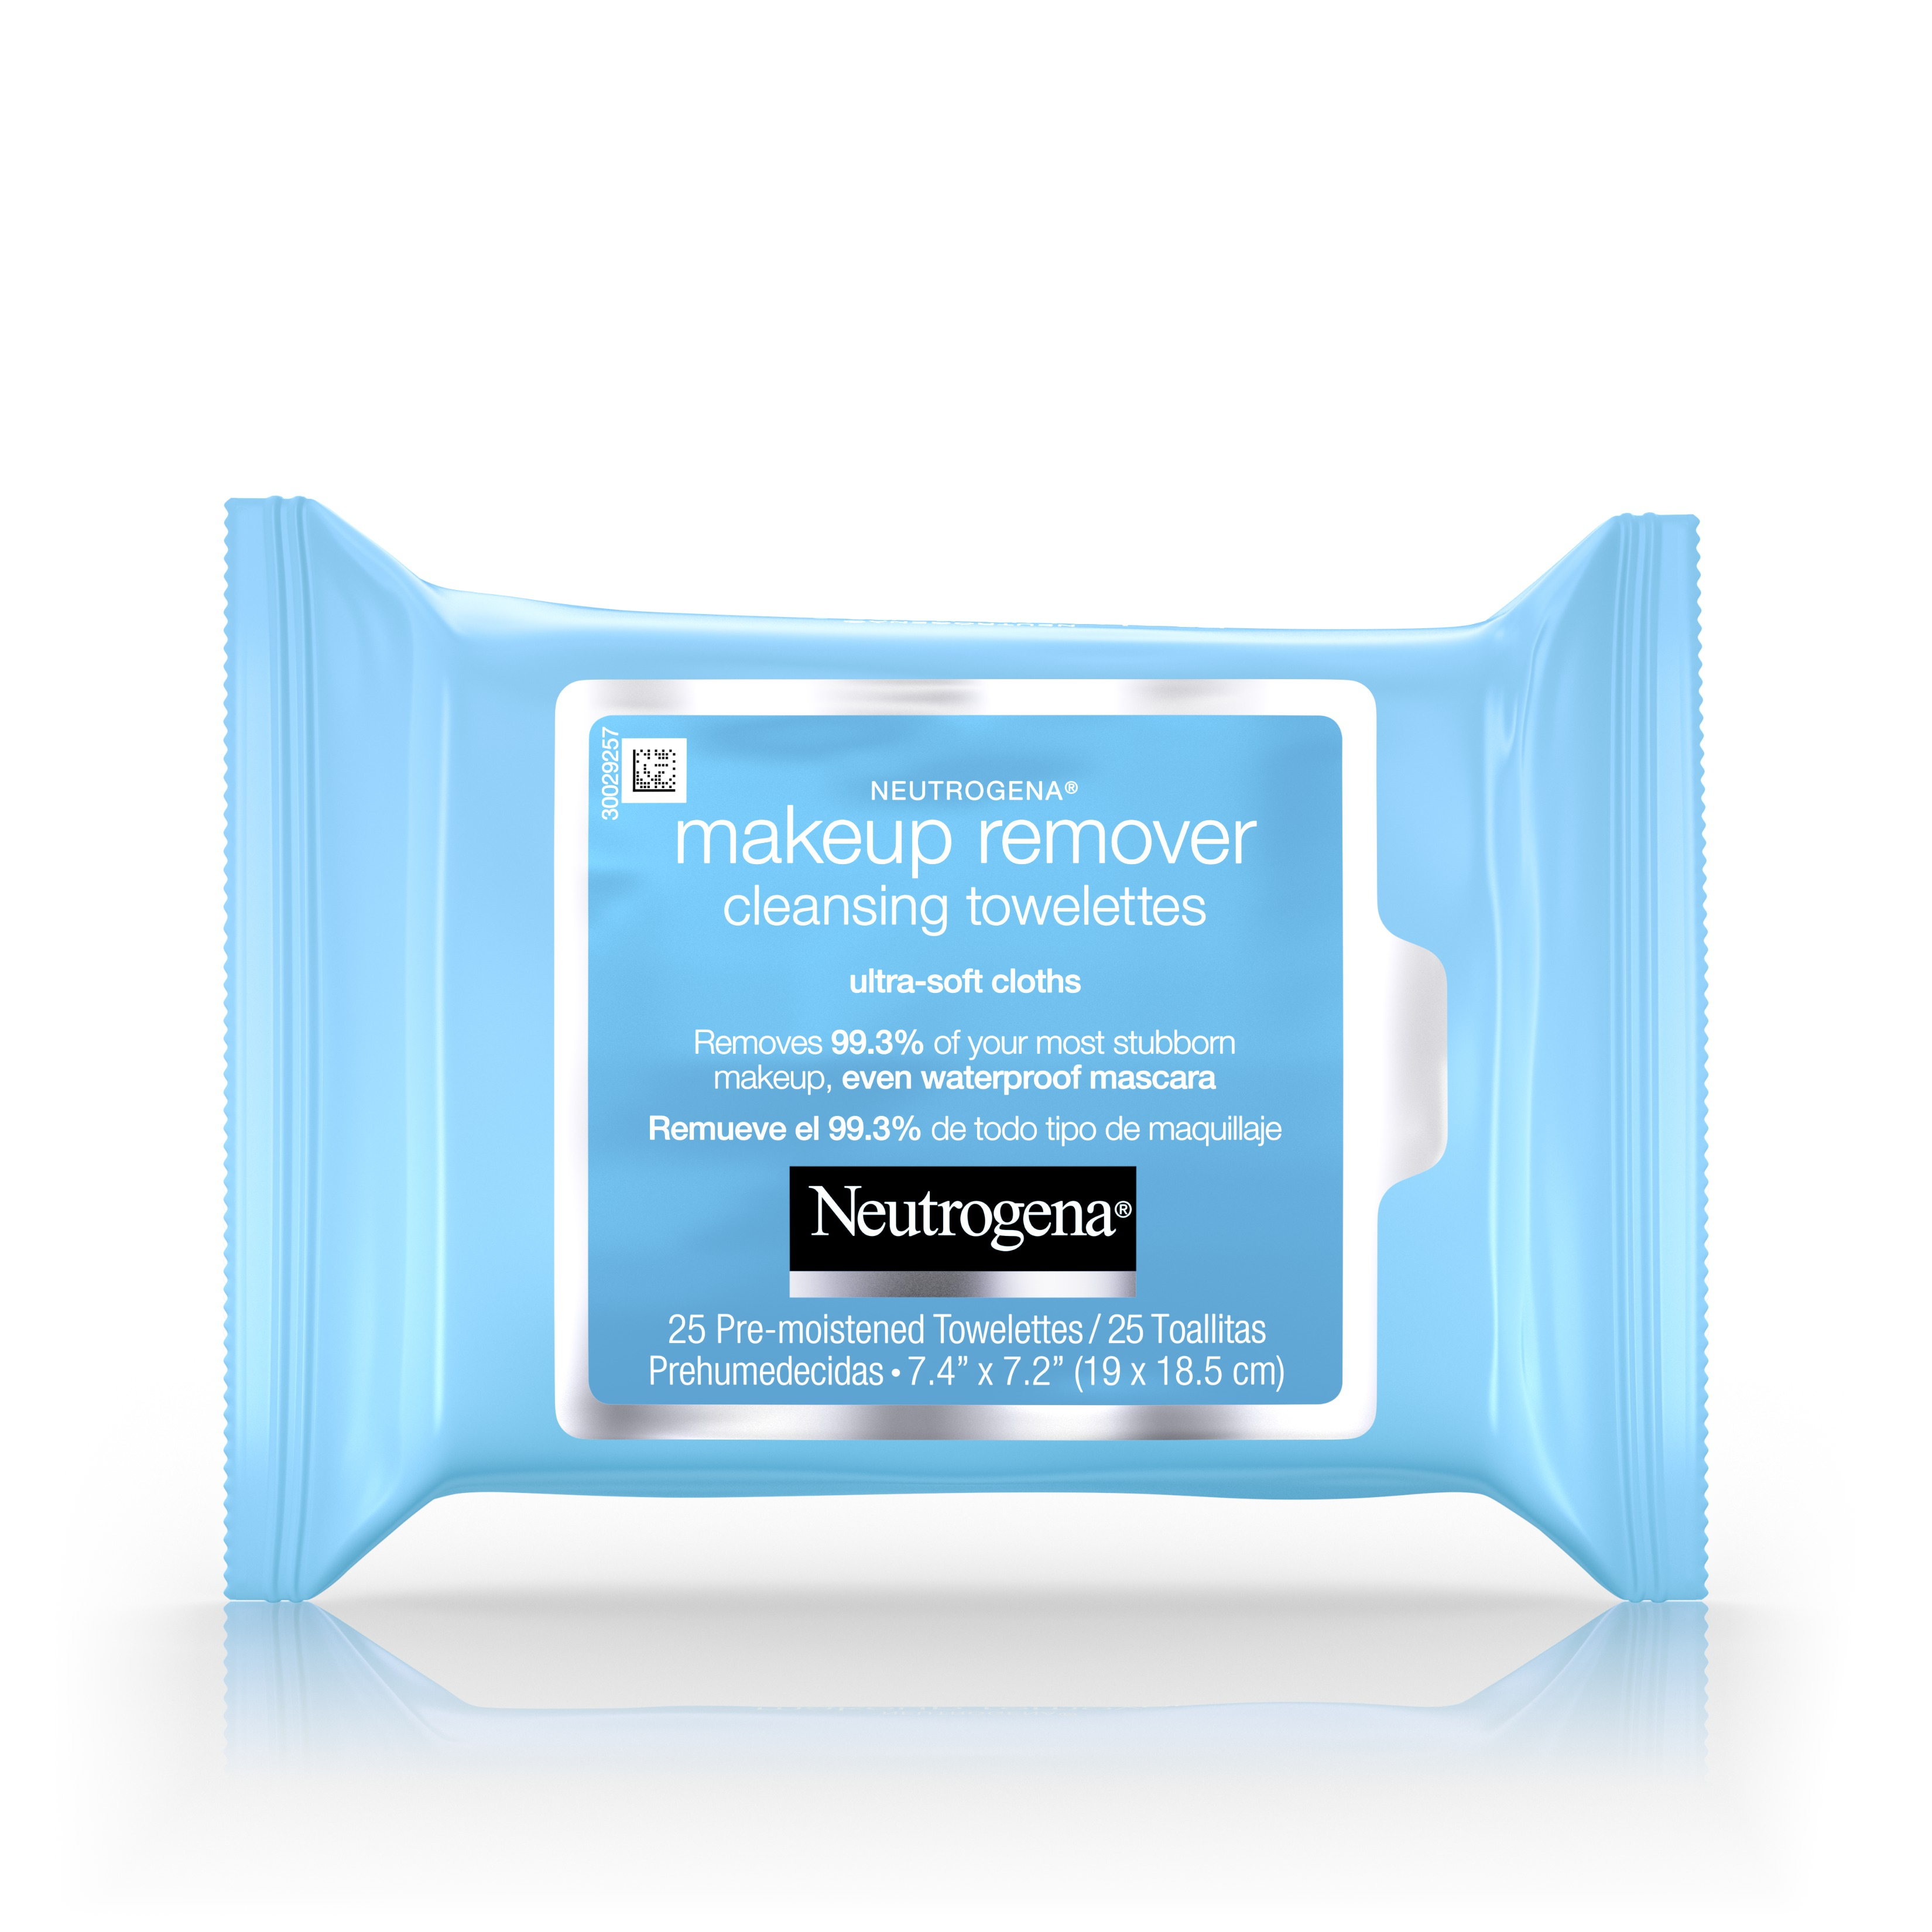 Neutrogena Makeup Remover Cleansing Towelettes & Face Wipes, 25 ct.